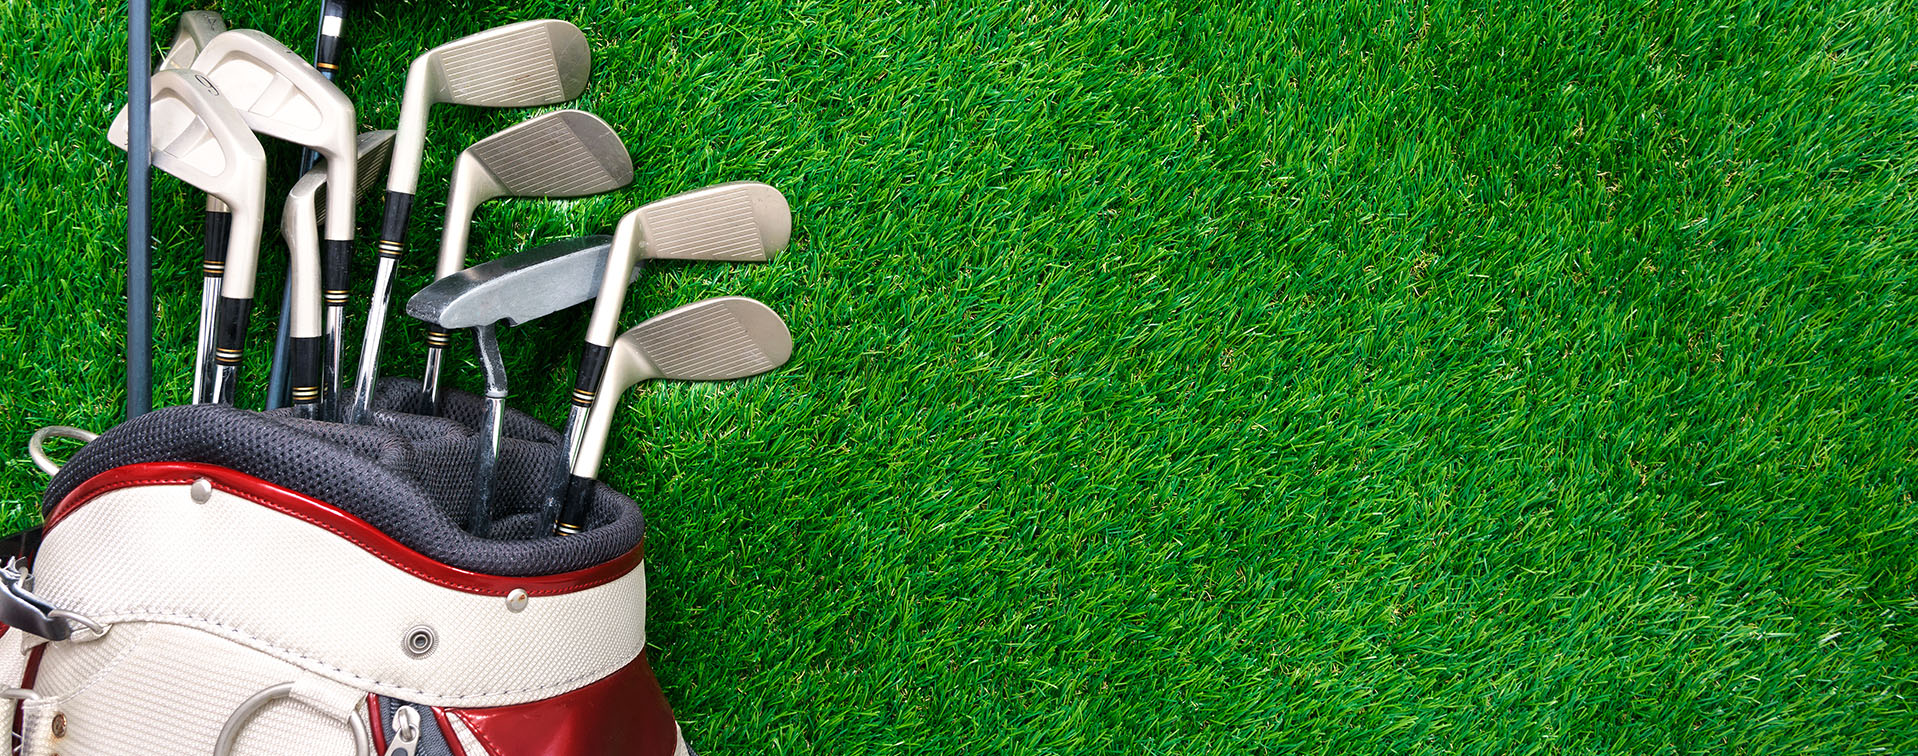 Photo of golf clubs on turf